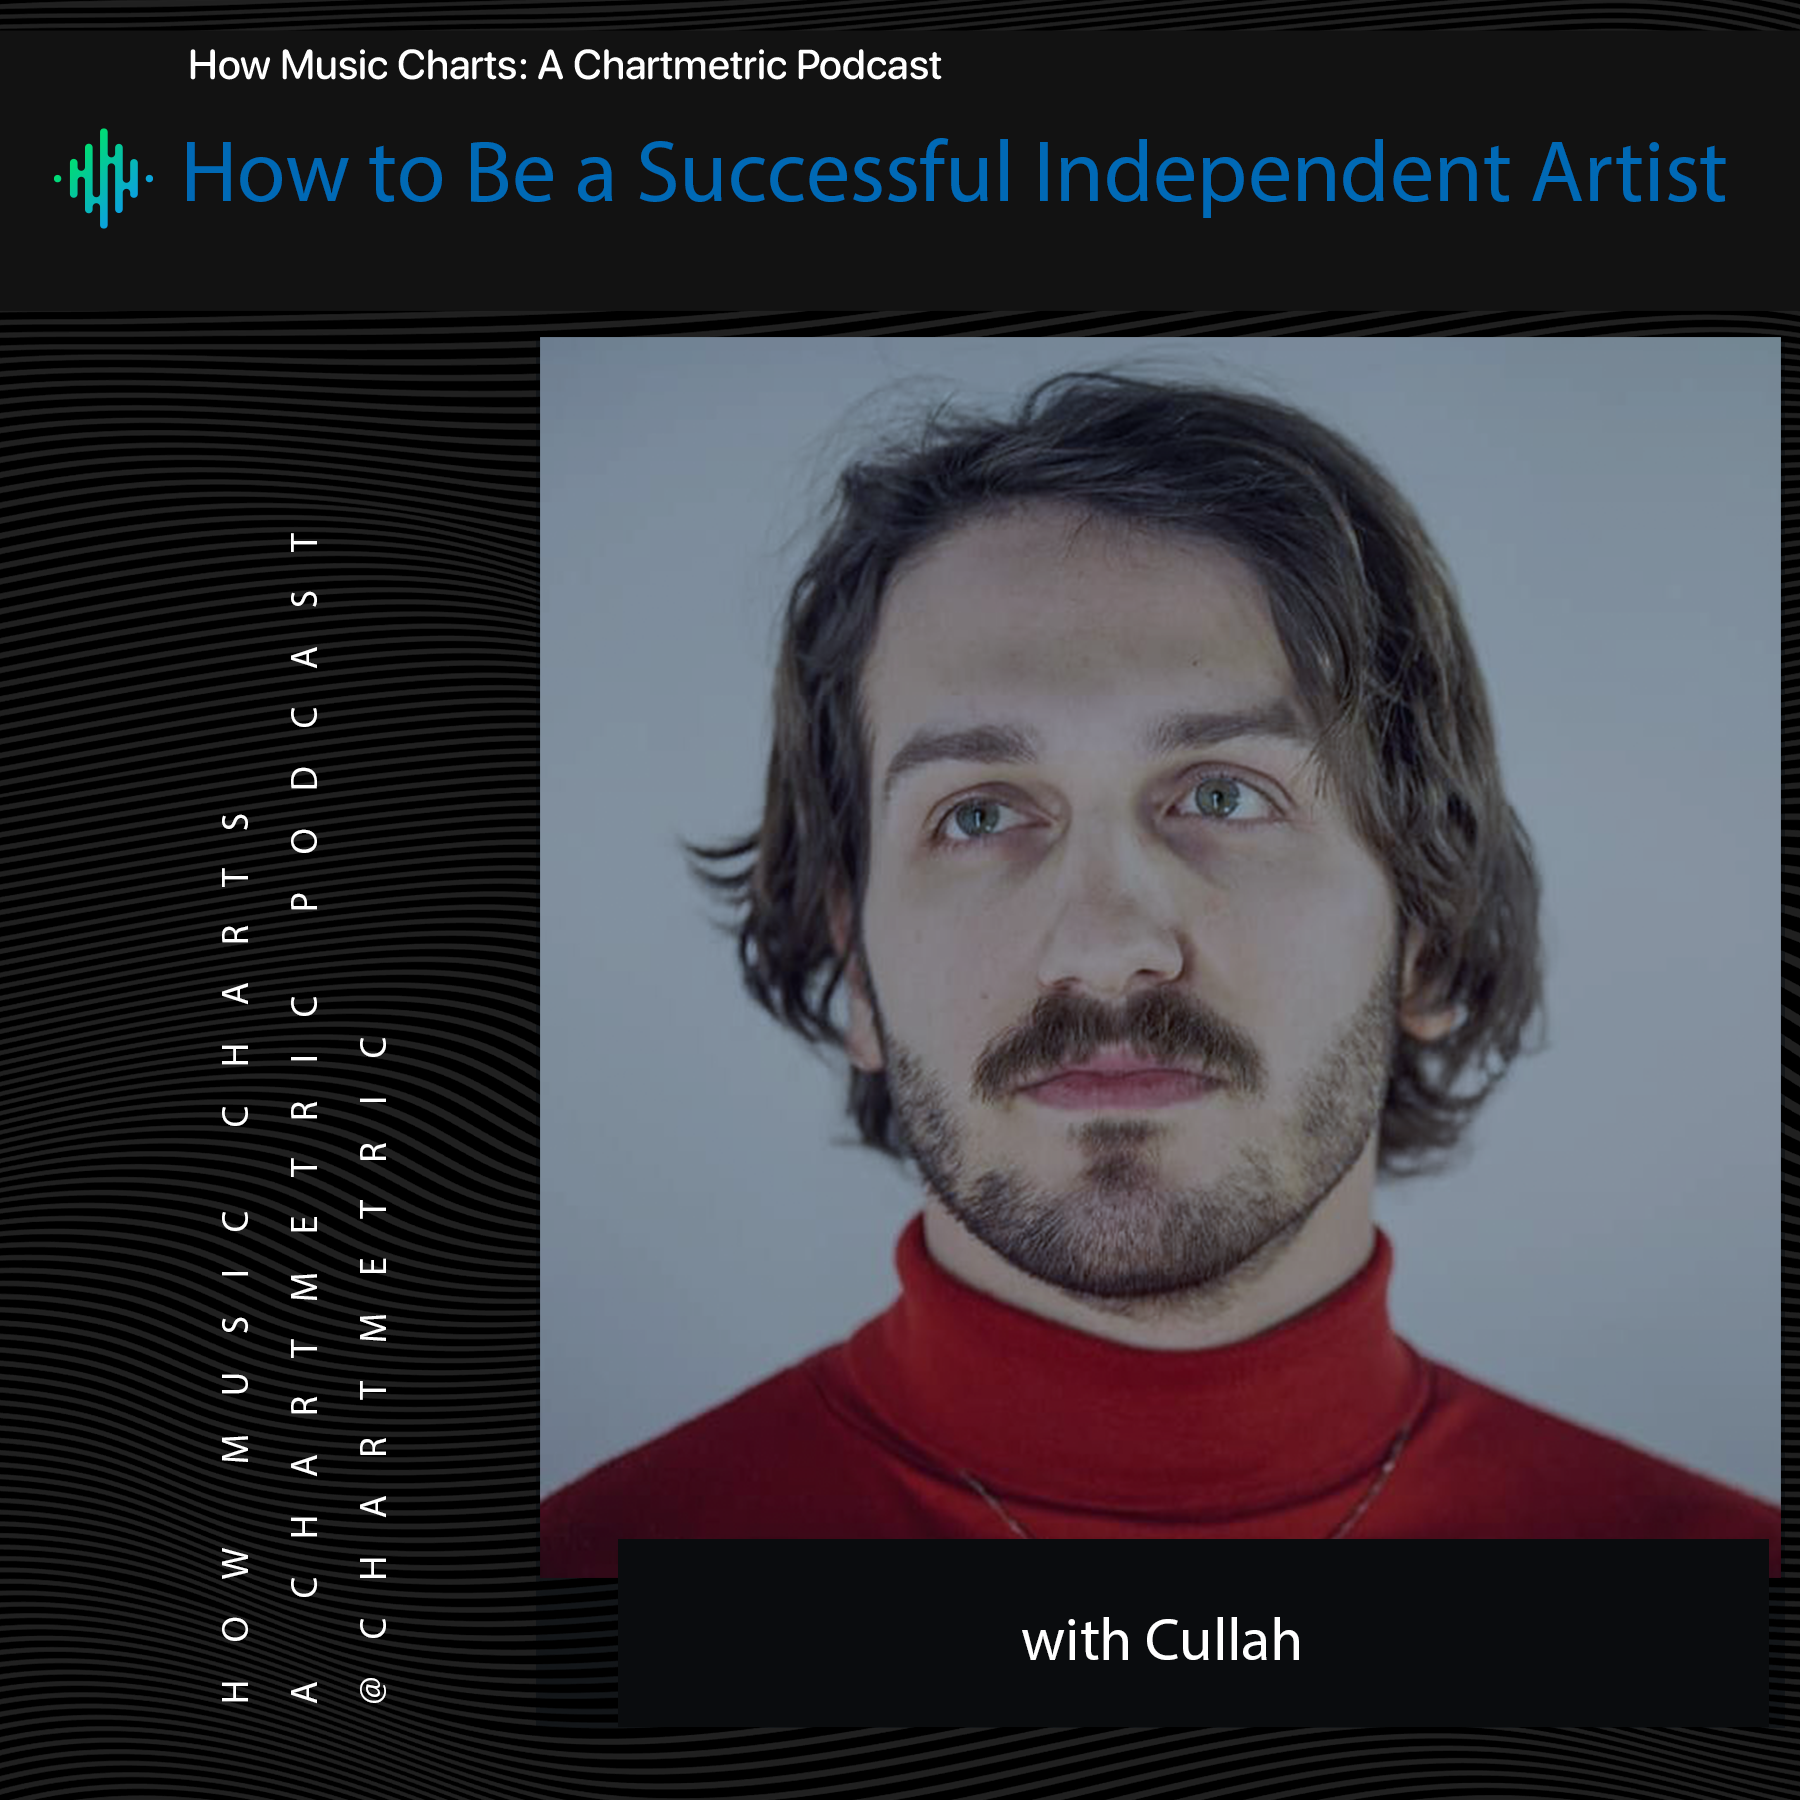 How to Be a Successful Independent Artist With Cullah